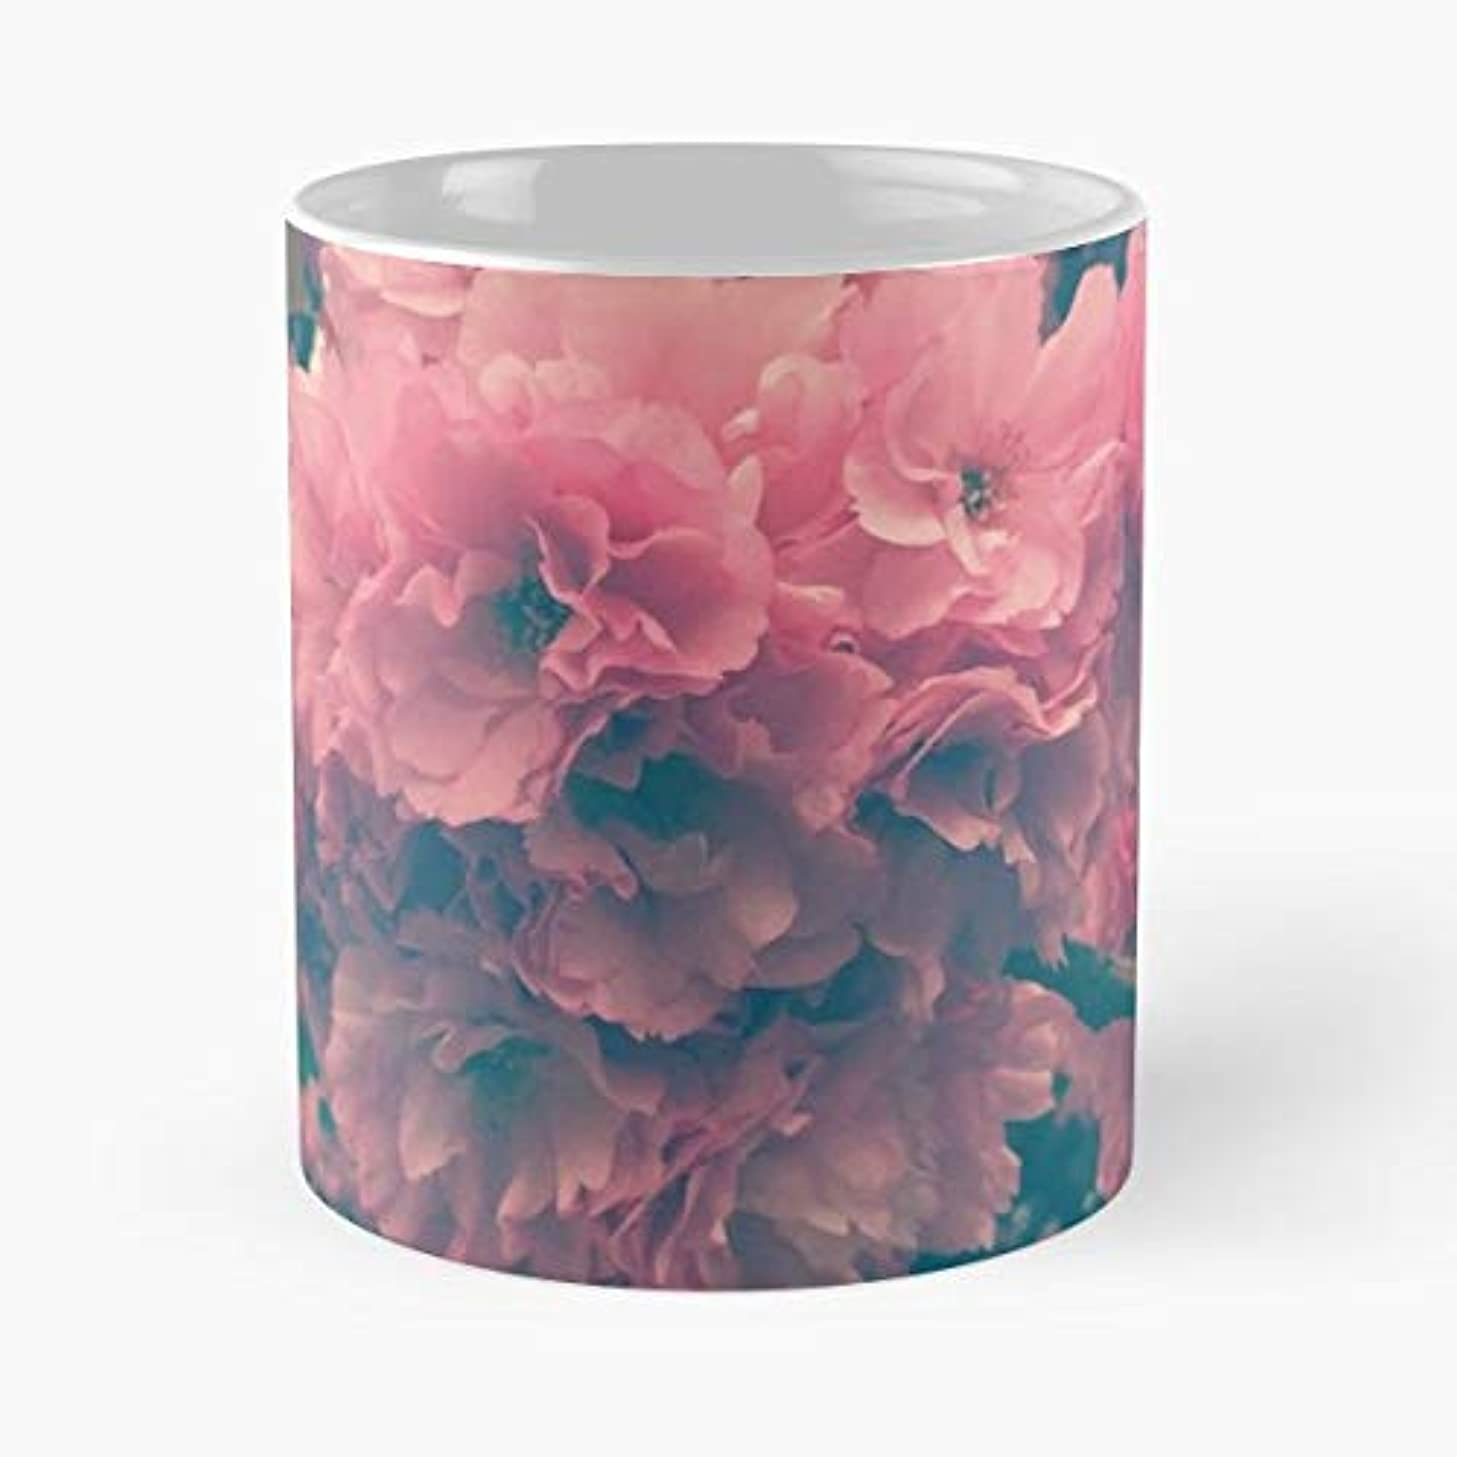 Floral Flowers Pink Eranglero - 11 Oz Coffee Mugs Unique Ceramic Novelty Cup, The Best Gift For Holidays.